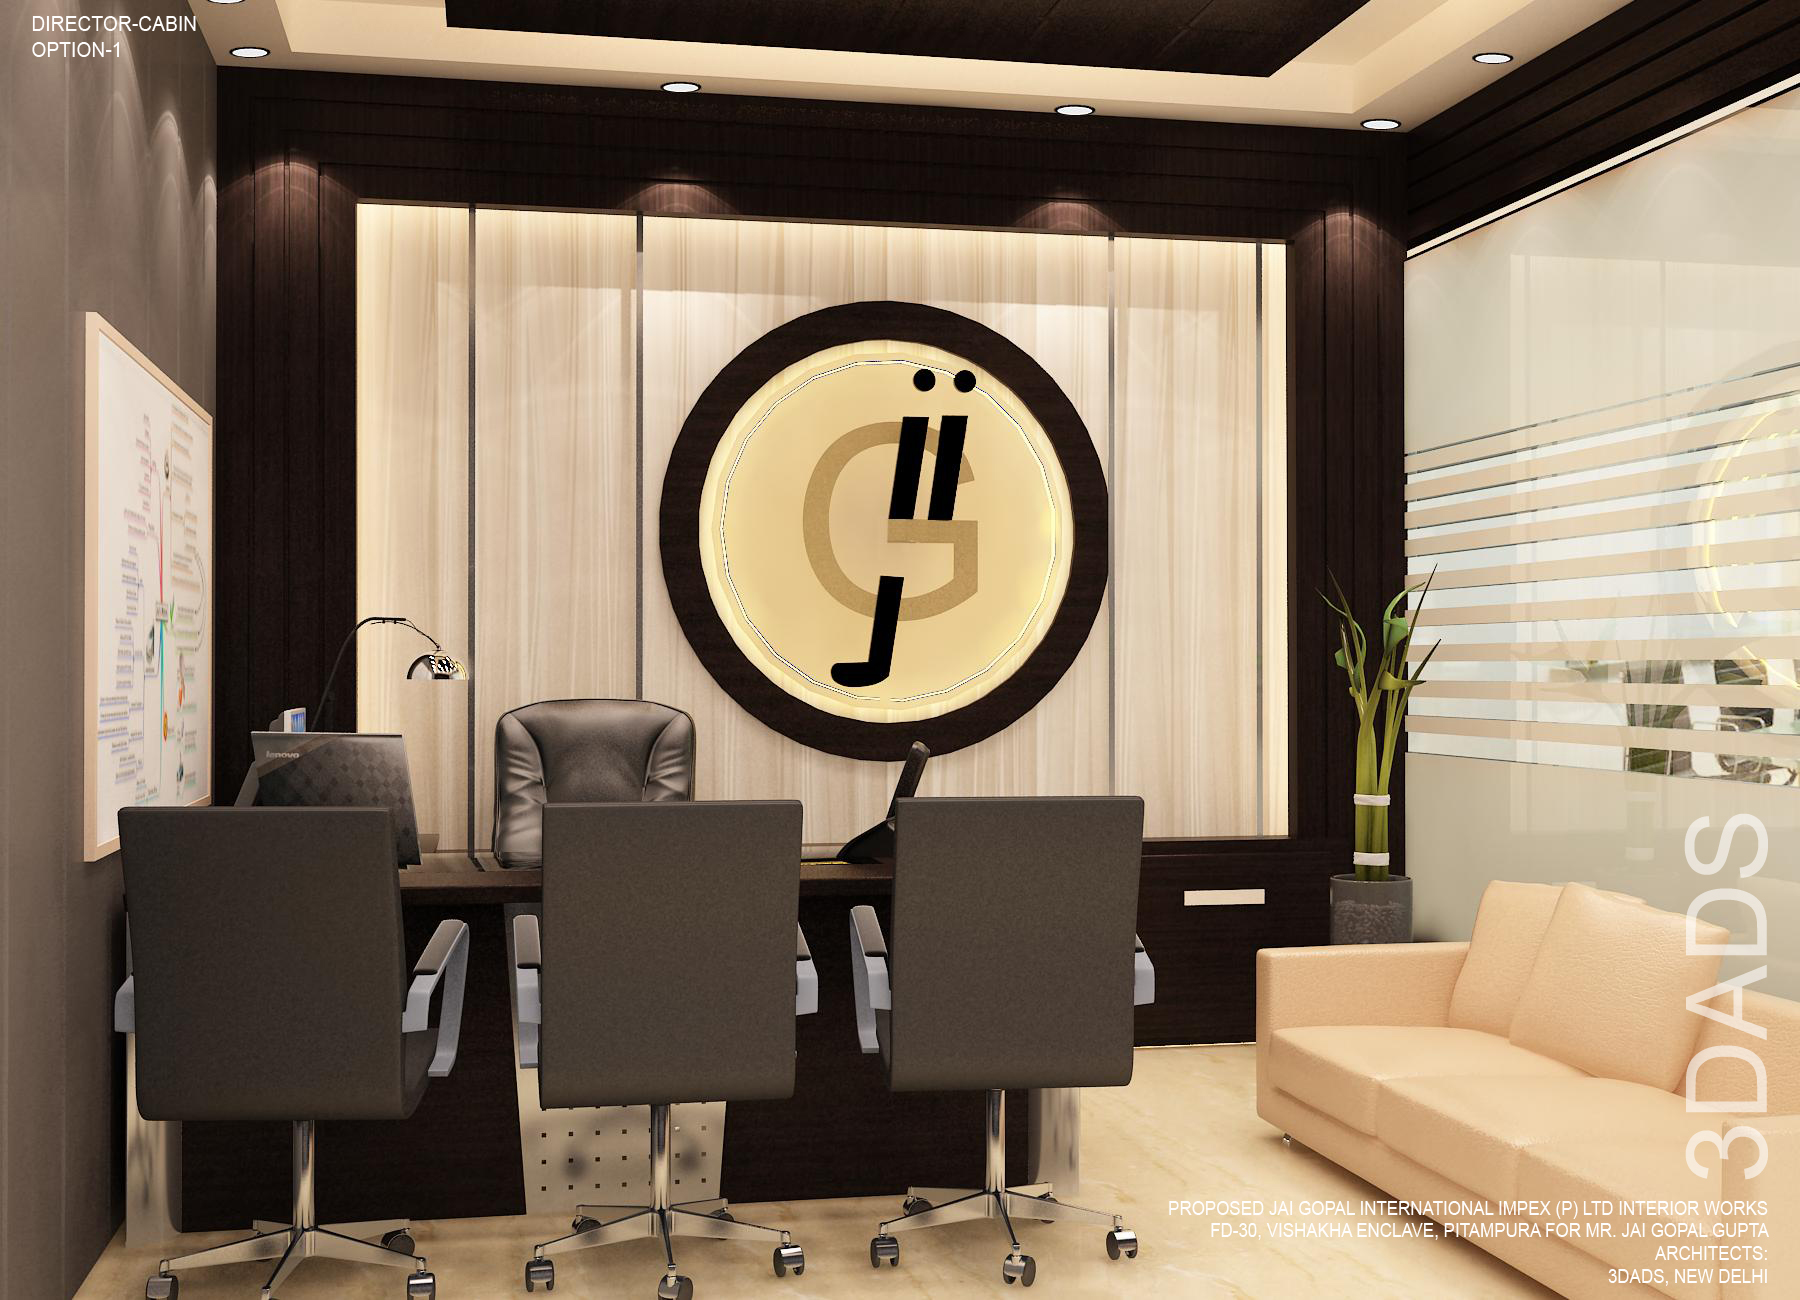 Best office Director cabin interior design